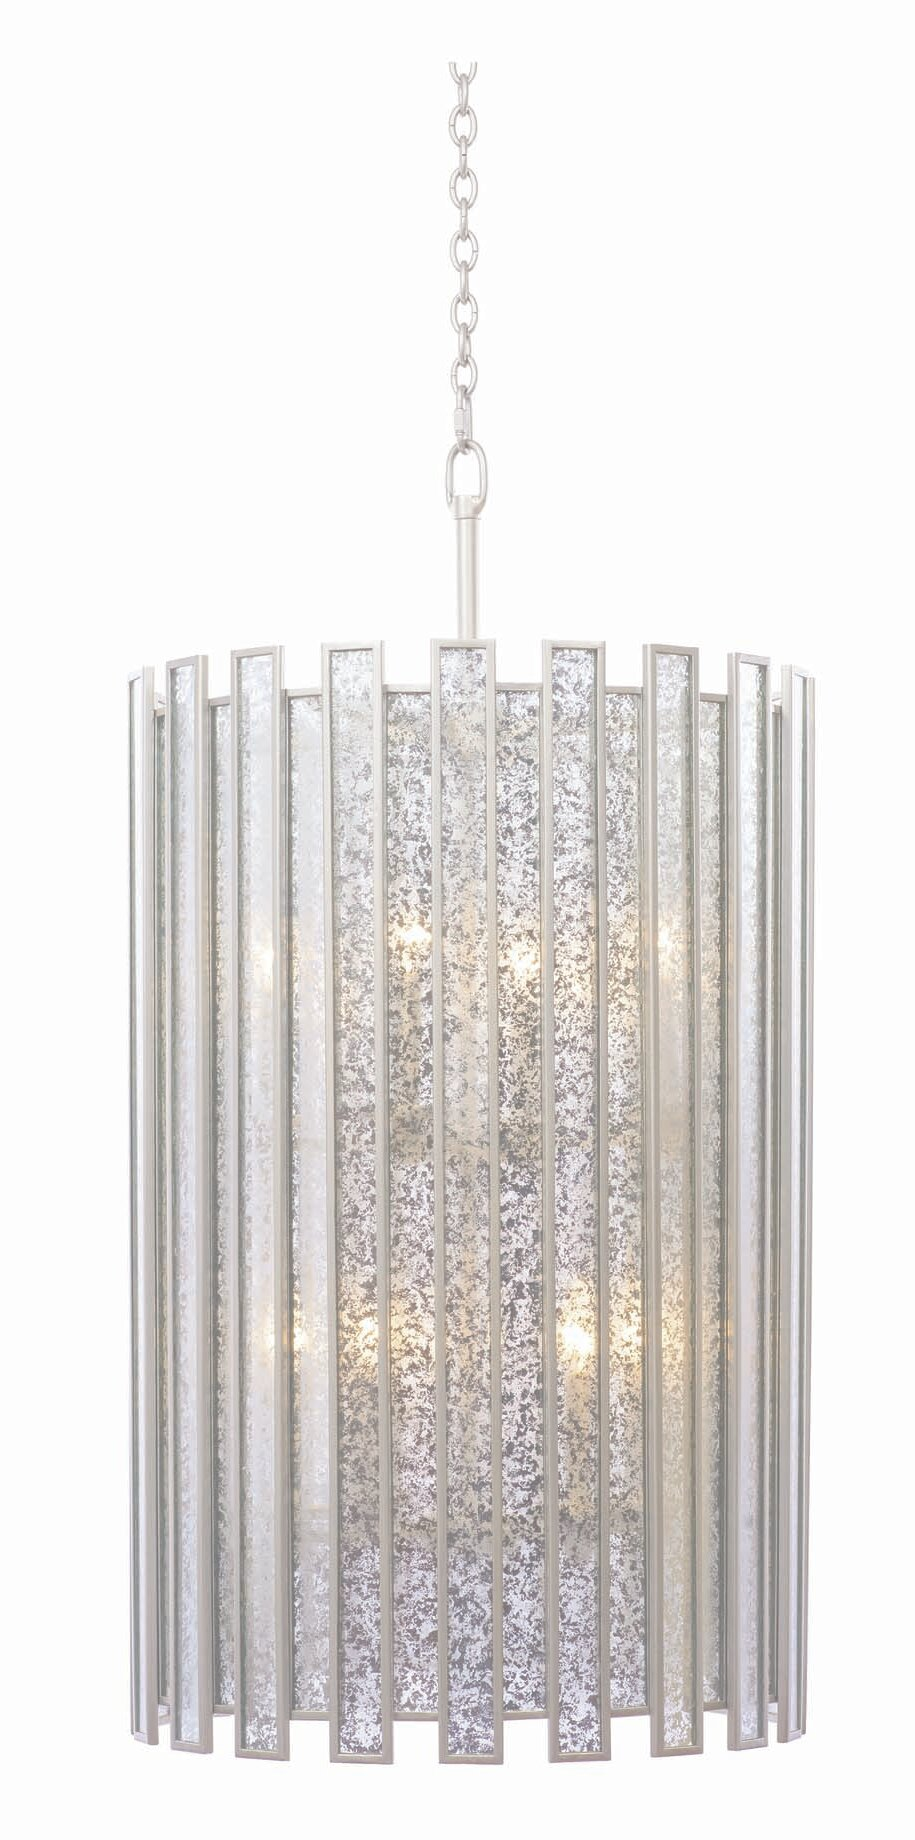 7 10 Light Cylinder Pendant Lighting You Ll Love In 2021 Wayfair